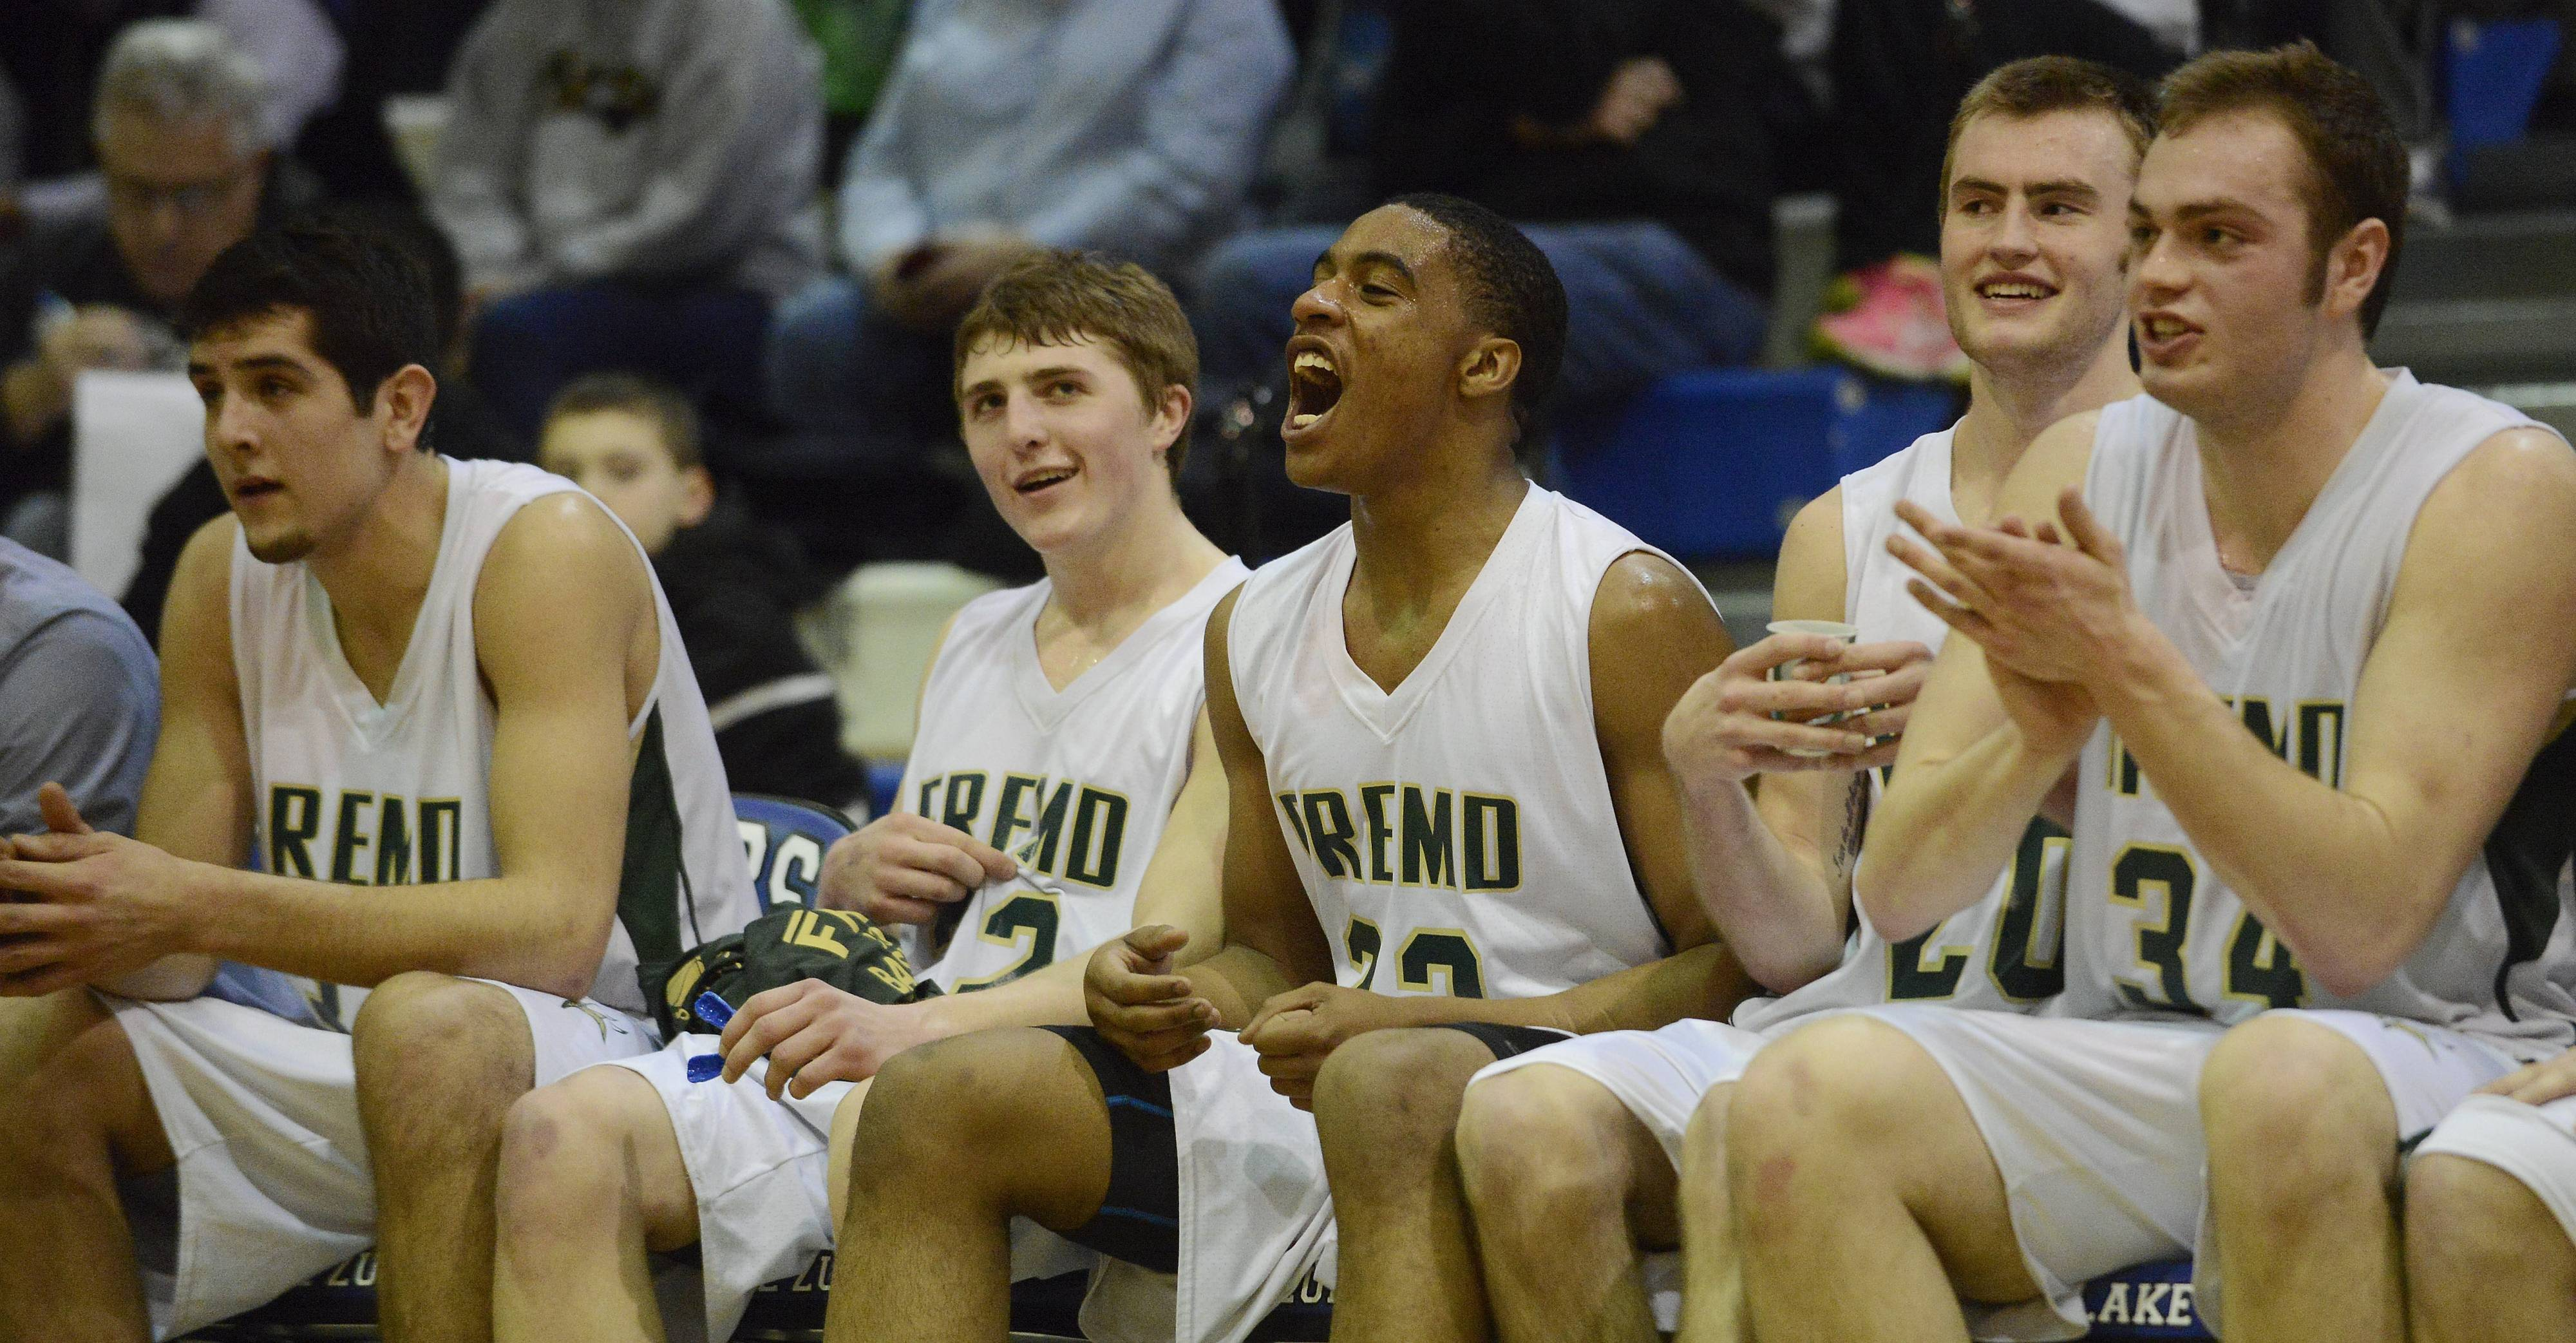 From left, Fremd starters including Matt Ochoa, Garrett Groot, Xavier Williams, Riley Glassmann and Ben Carlson cheer after a basket near the end of during Wednesday's Class 4A sectional semifinal victory over Highland Park at Lake Zurich.